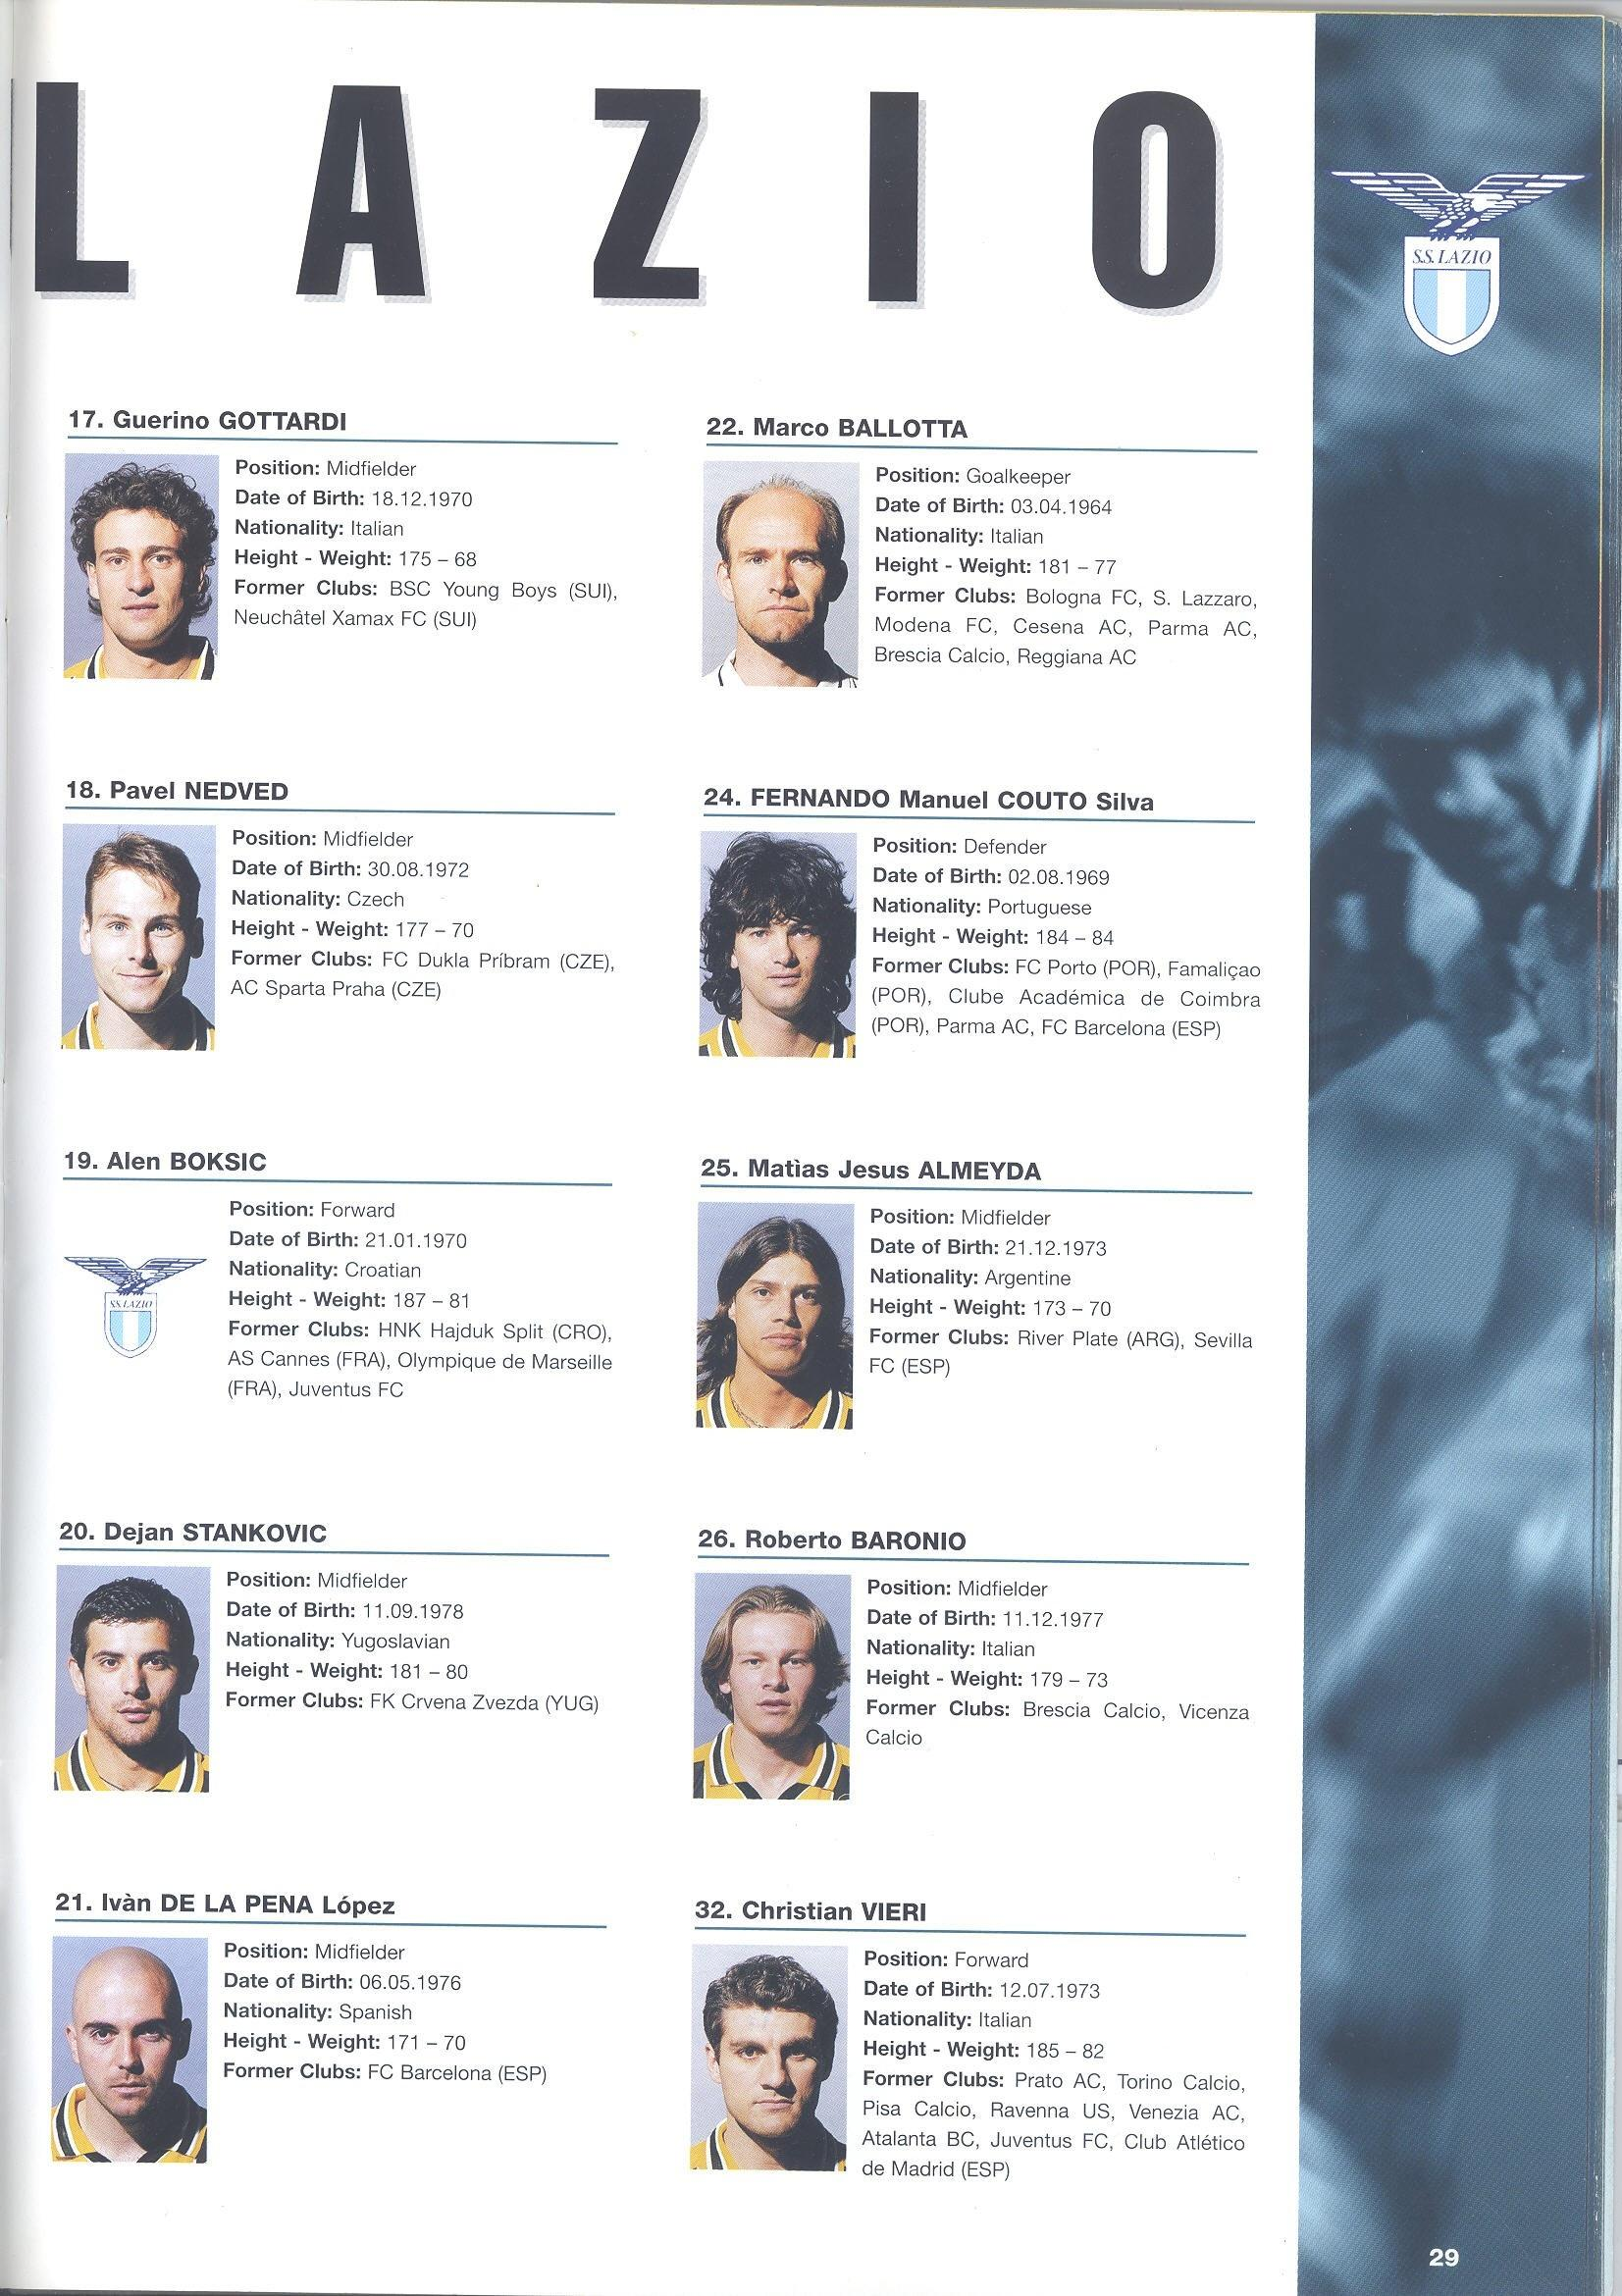 Official Programme 19mag1999 - Pag29.jpg